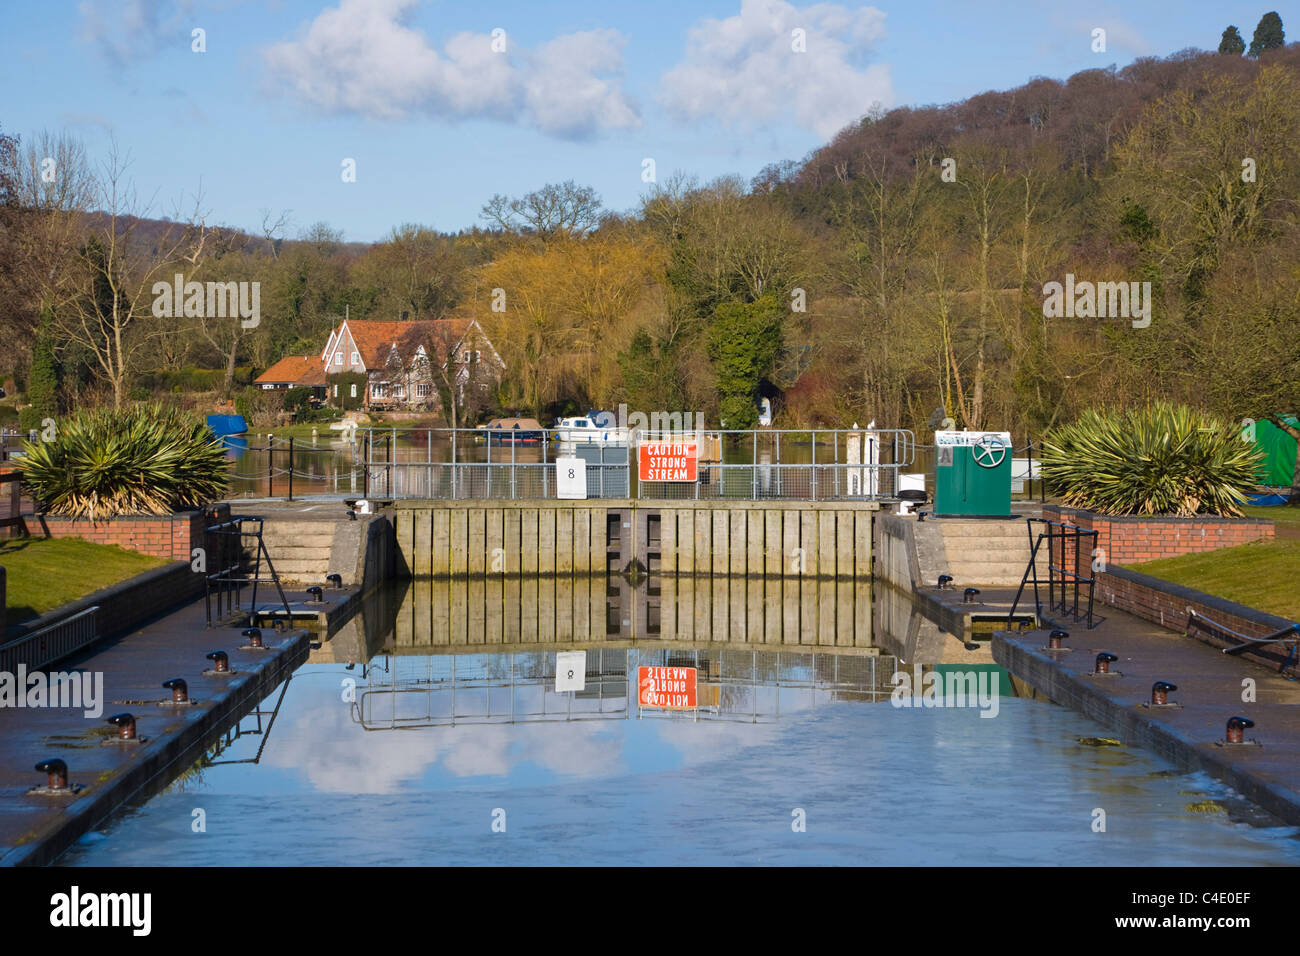 Hambleden Lock downstream of Henley-on-Thames, Oxfordshire, England, UK - Stock Image